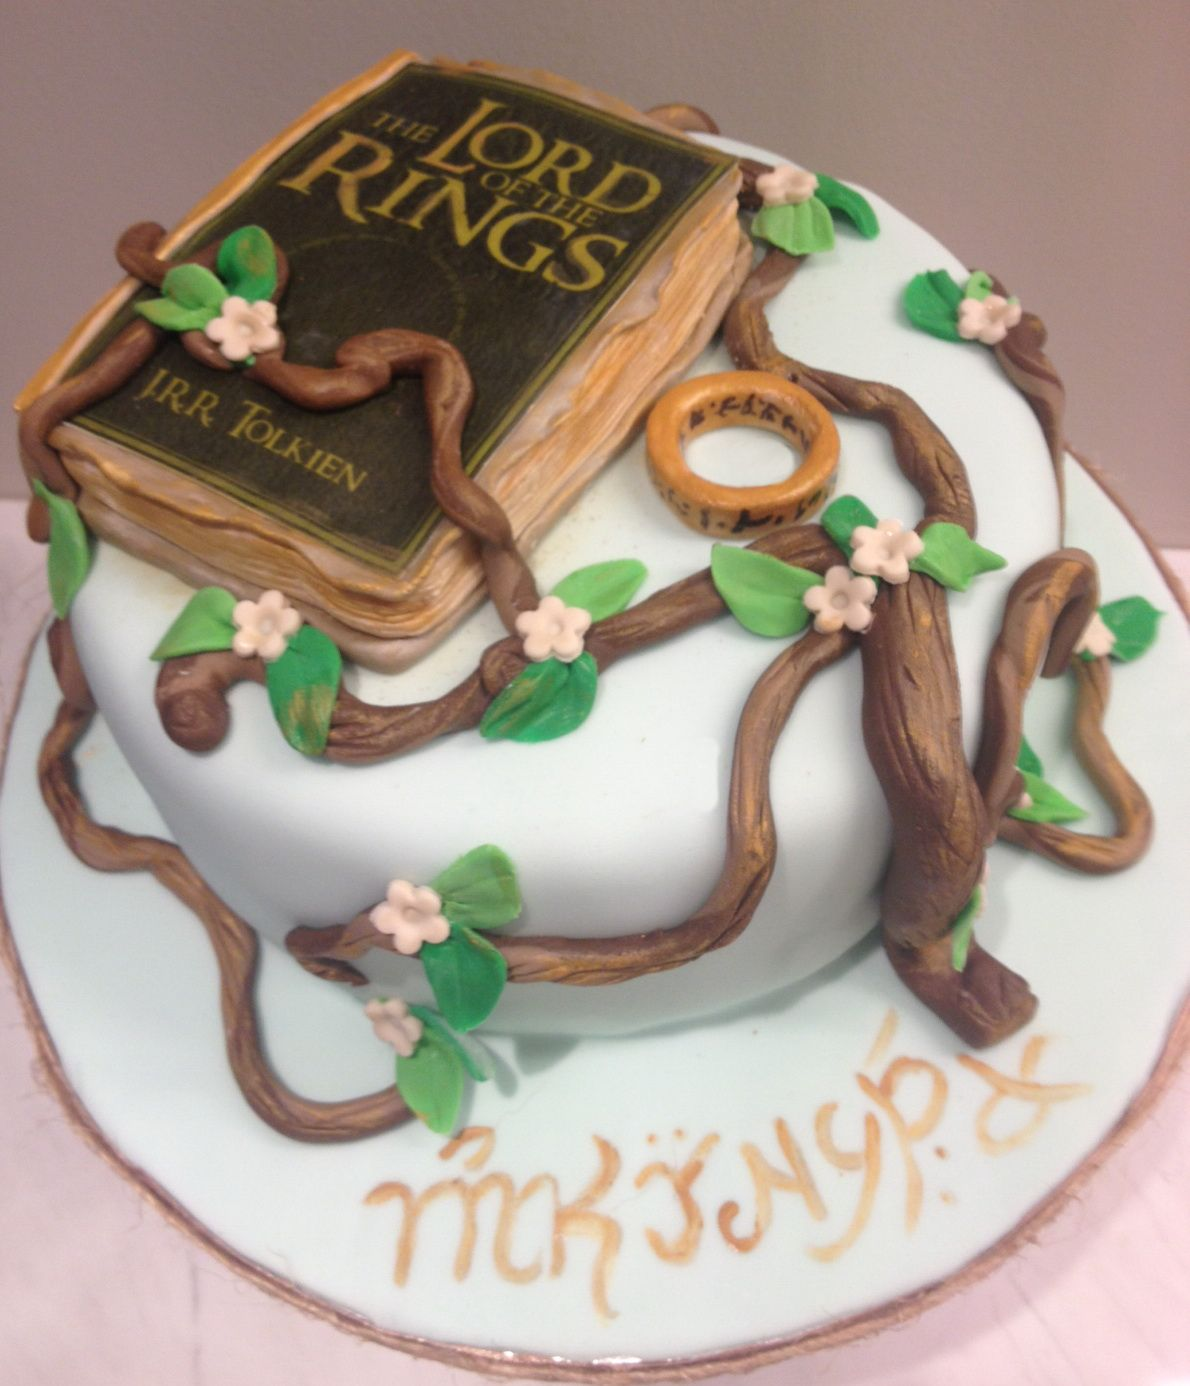 Lord of the rings cake recipe